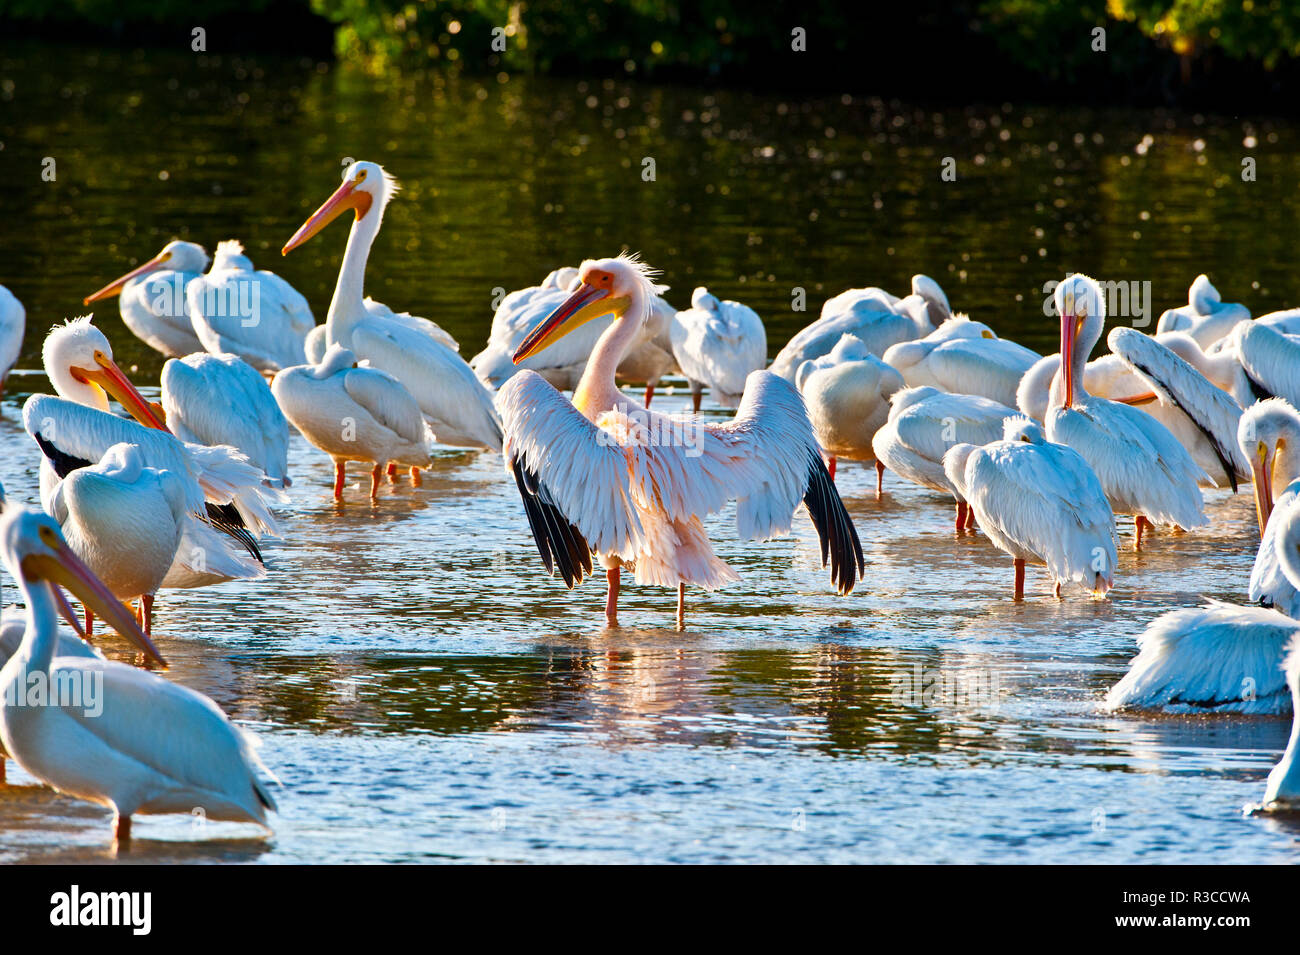 USA, Florida, Fort Meyers, Sanibel Island, J.N. Ding Darling National Wildlife Refuge, Great White African Pelican with American White Pelicans - Stock Image